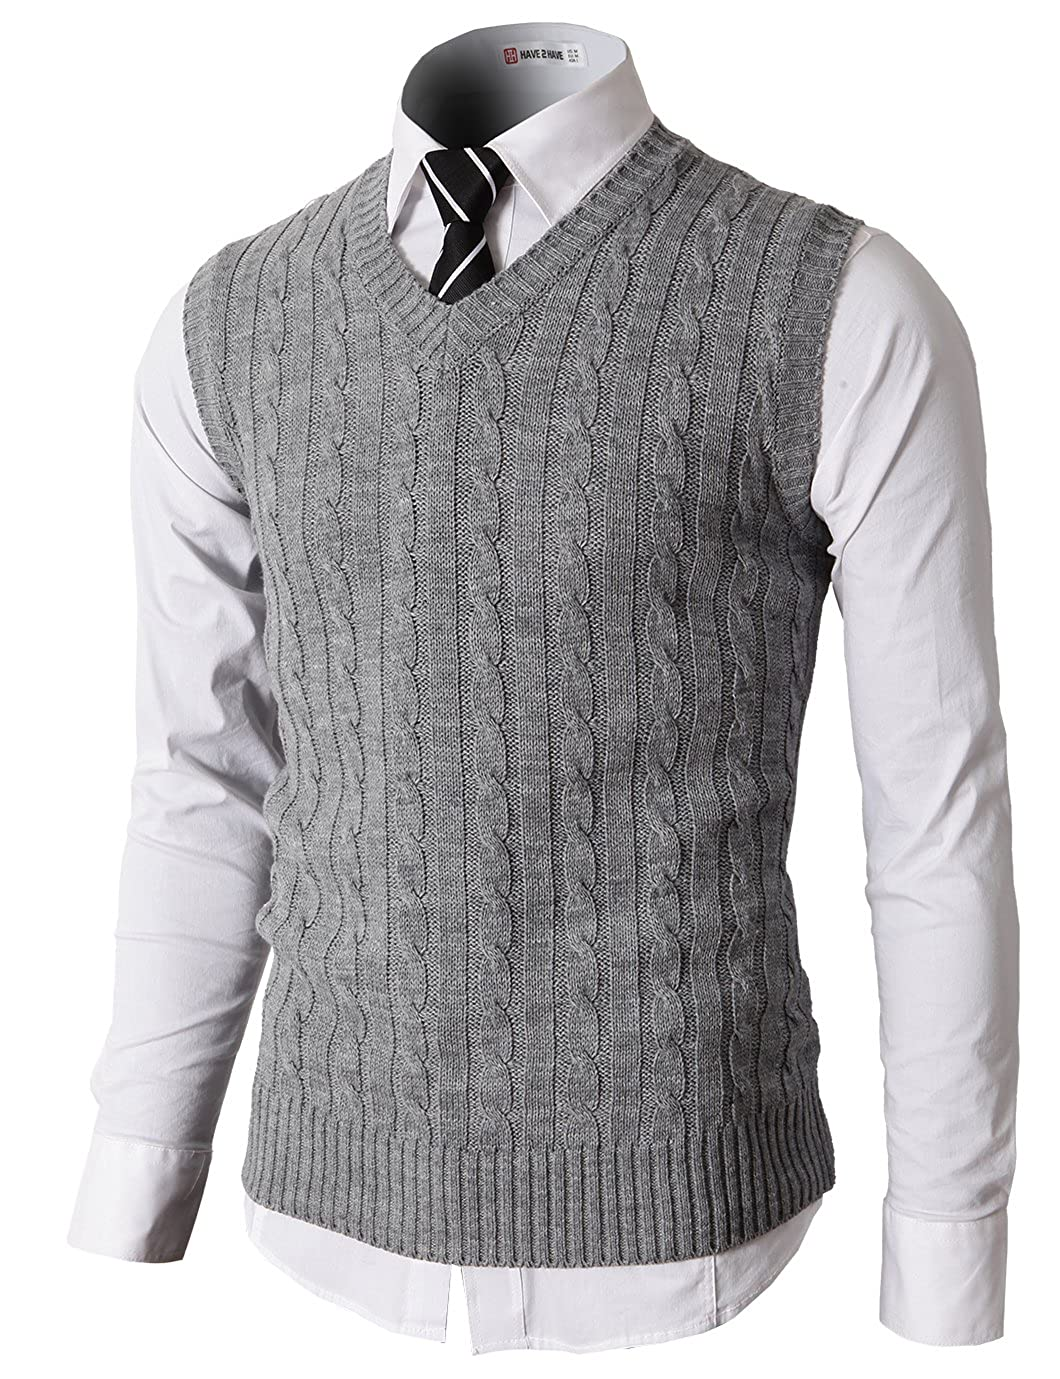 Men's Vintage Inspired Vests H2H Mens Casual Knitted Slim Fit V-neck Vest With Twisted Patterned $26.80 AT vintagedancer.com